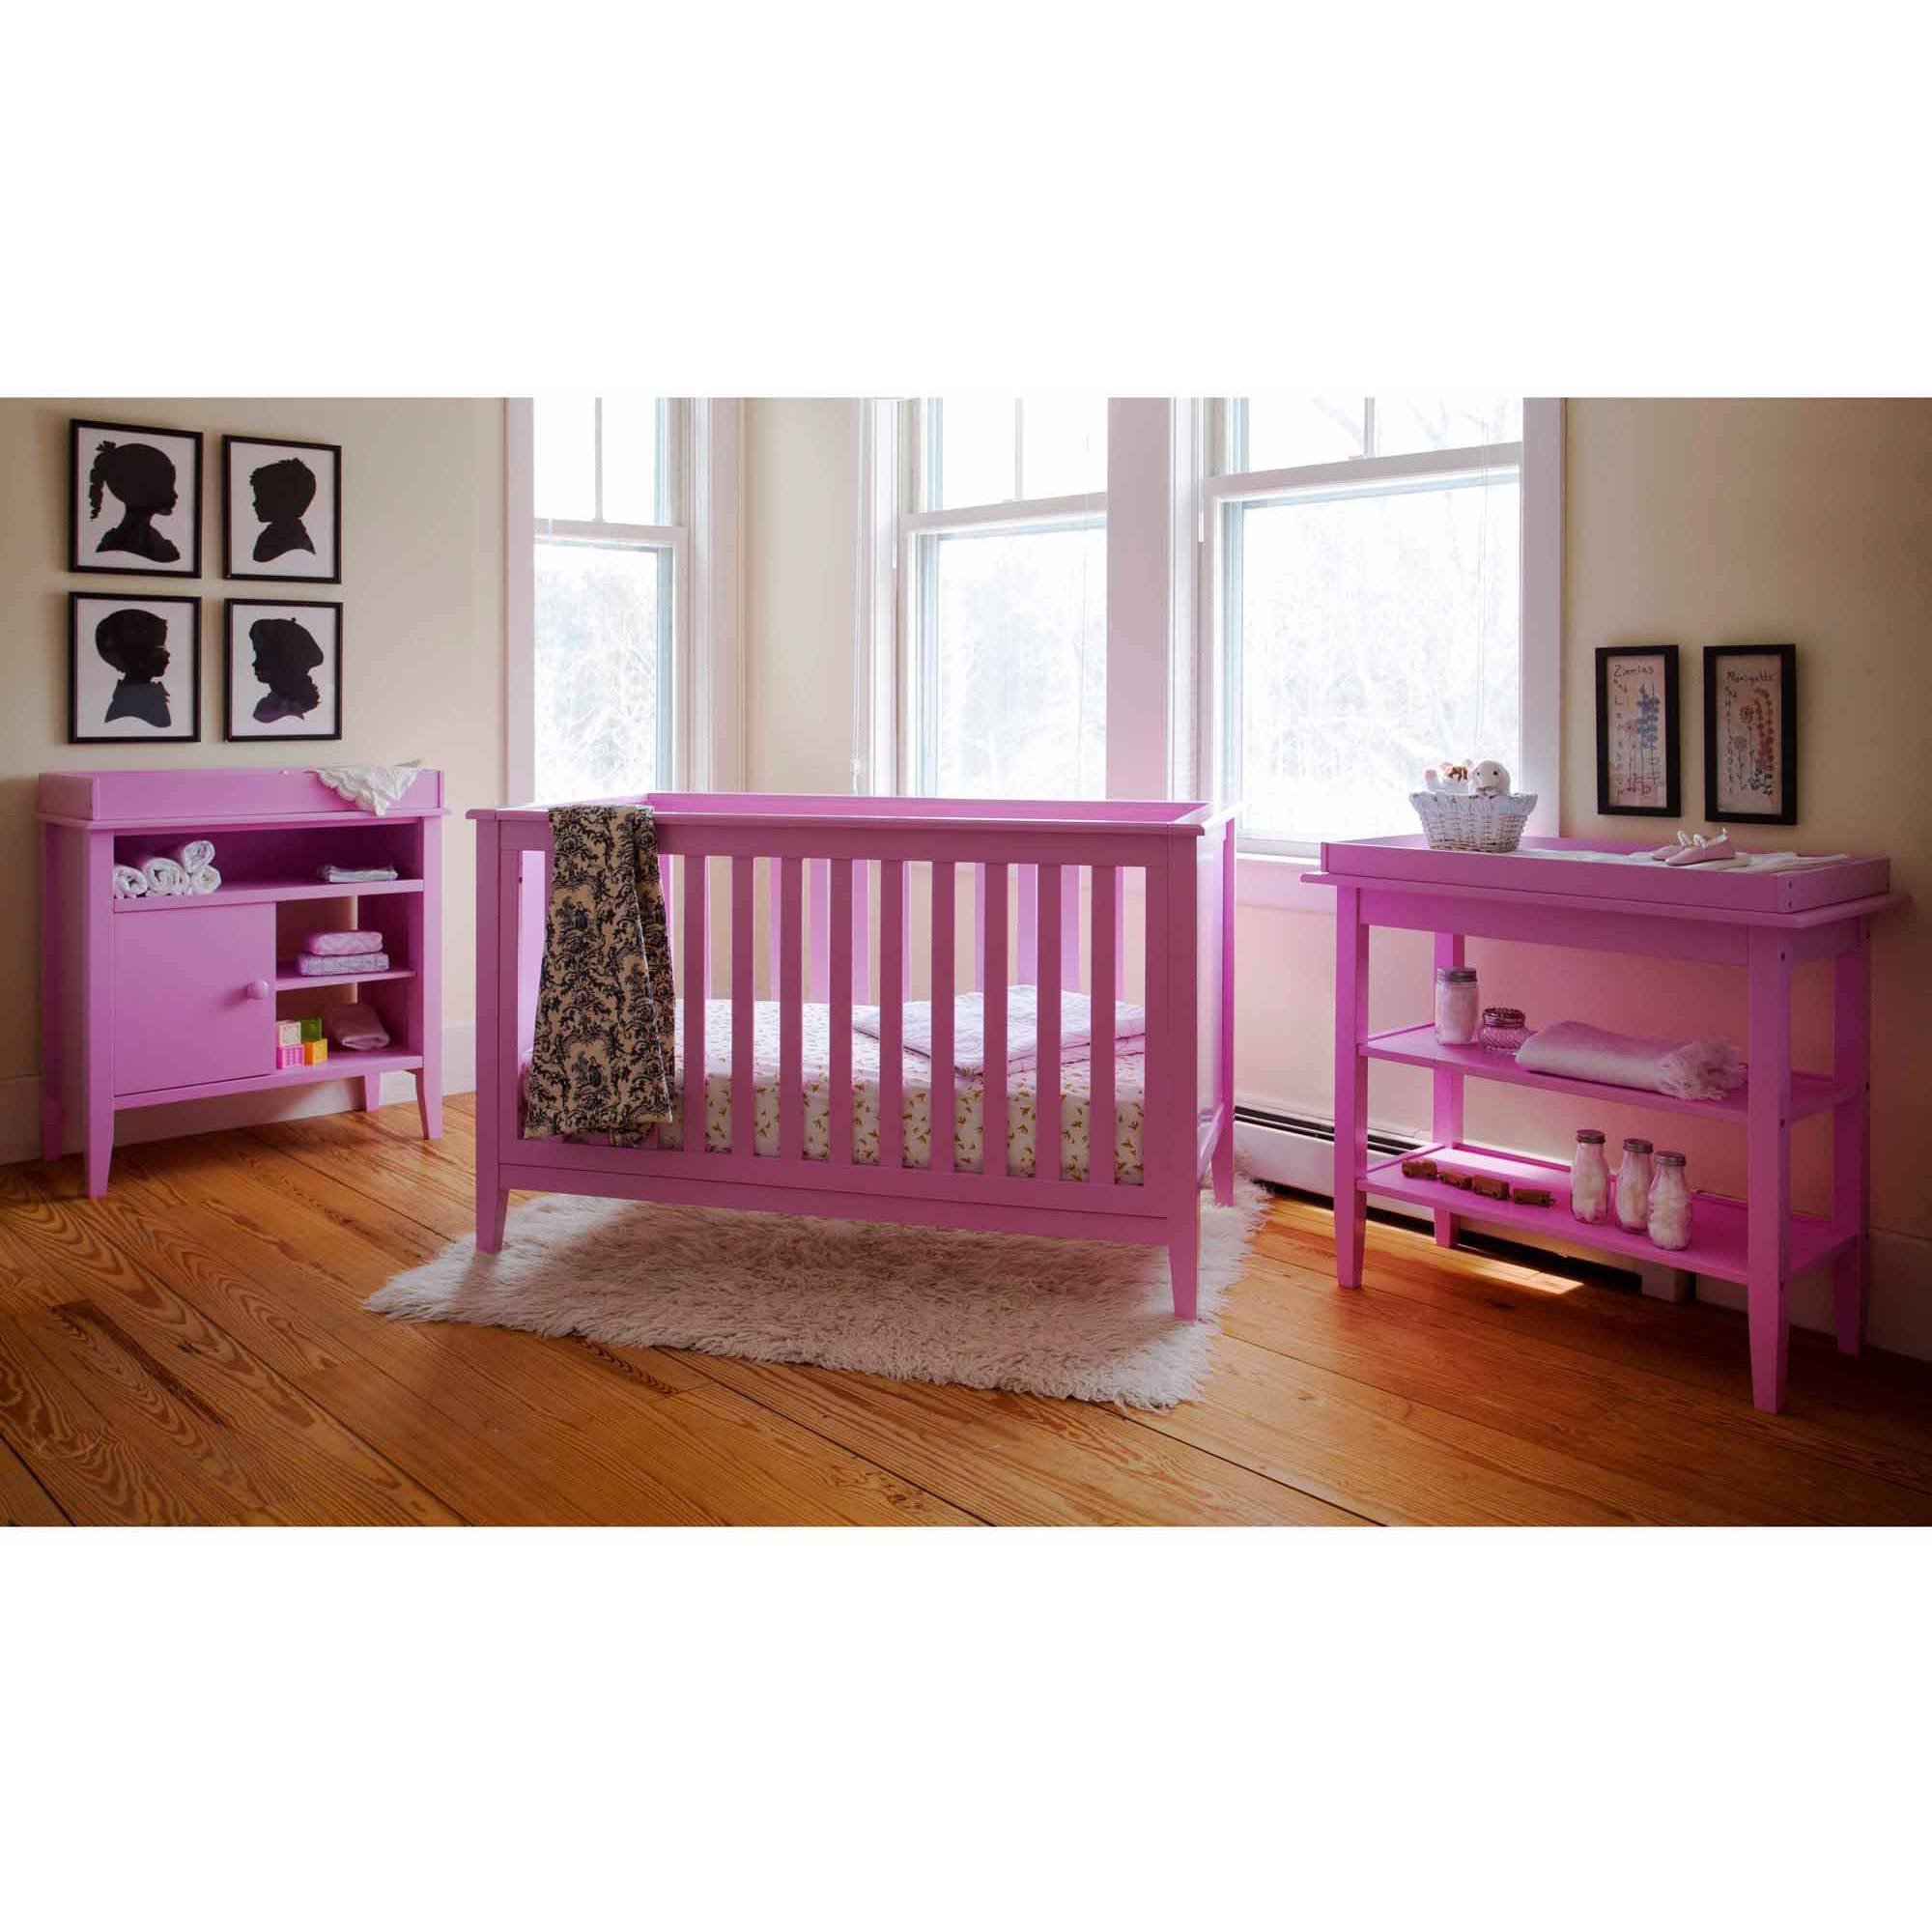 Lolly & Me Color Me 3-in-1 Convertible Crib Bubble Gum Pink